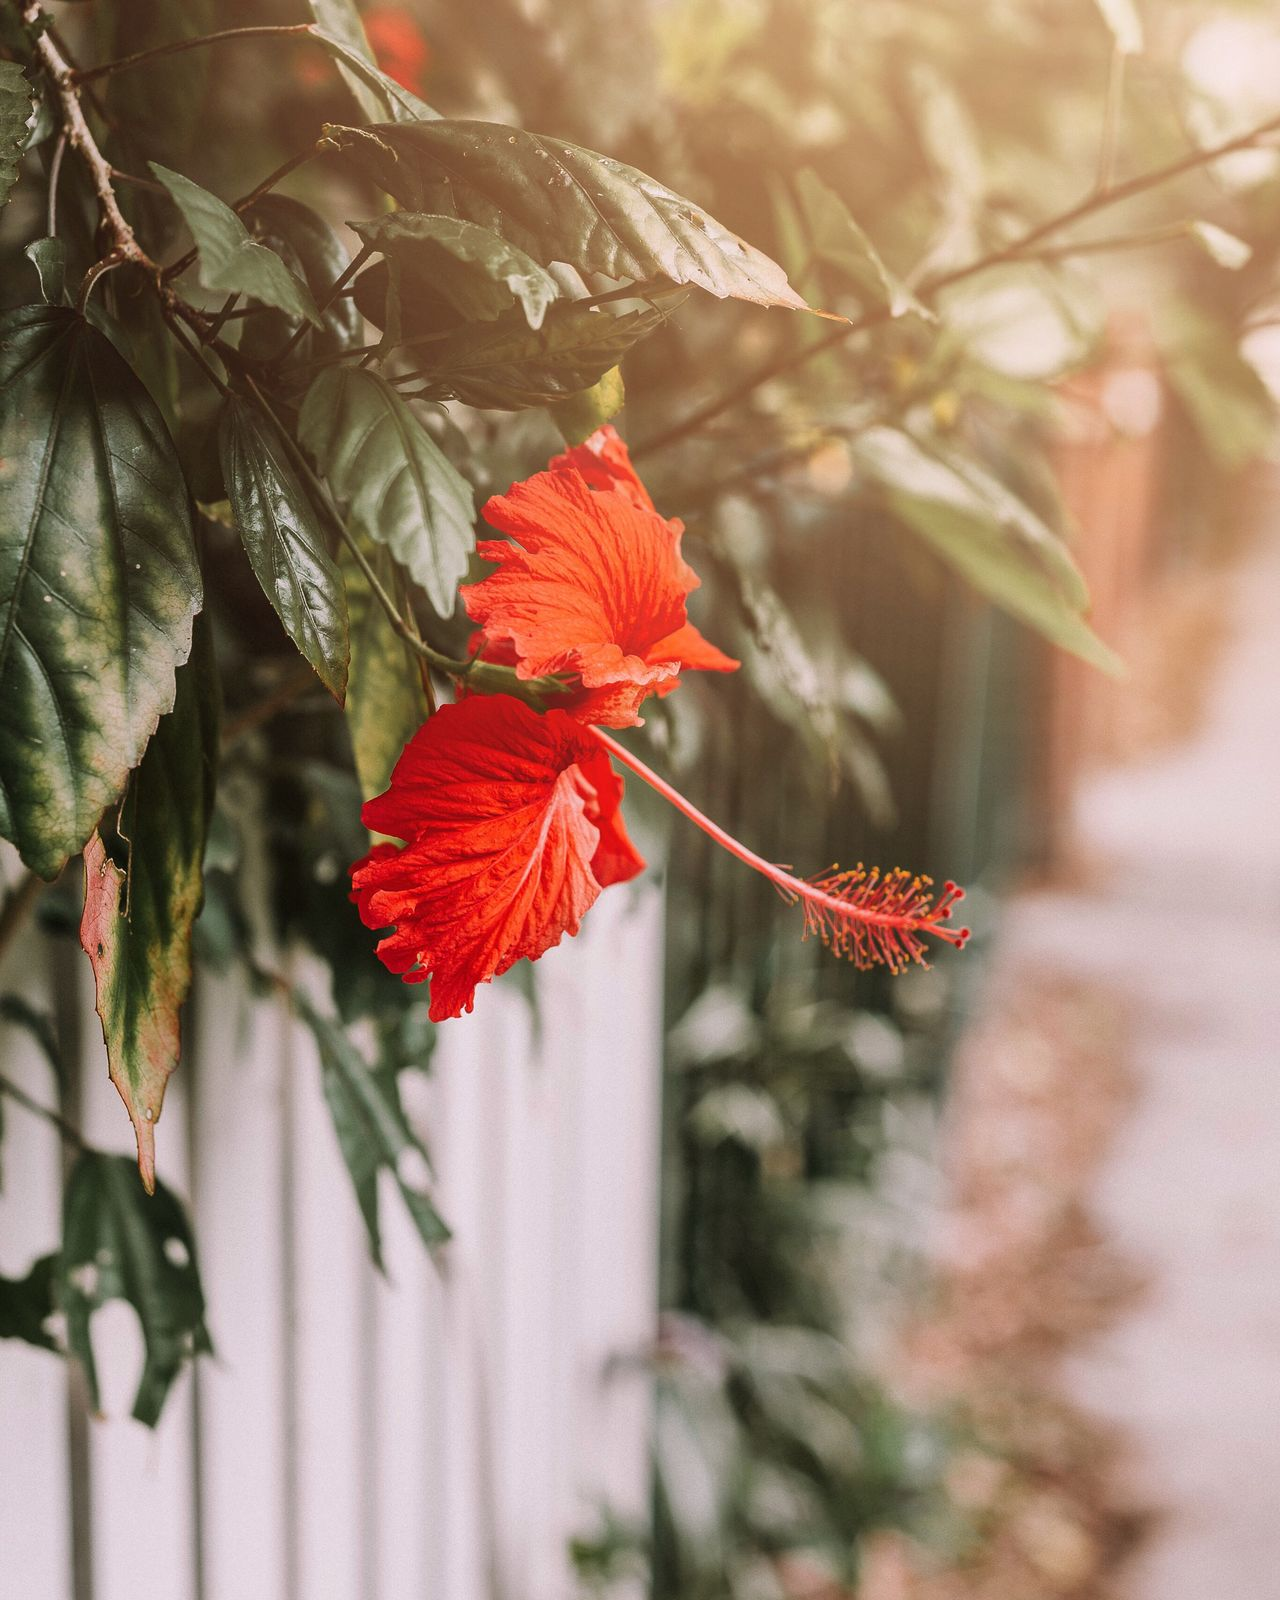 Flowers make you happy 🌺❤️ Beauty In Nature Red Plant Flower Focus On Foreground Outdoors No People Flowers Hibiscus City Life Urban Exploration Green City Flowers In The City Close-up Summer Holidays